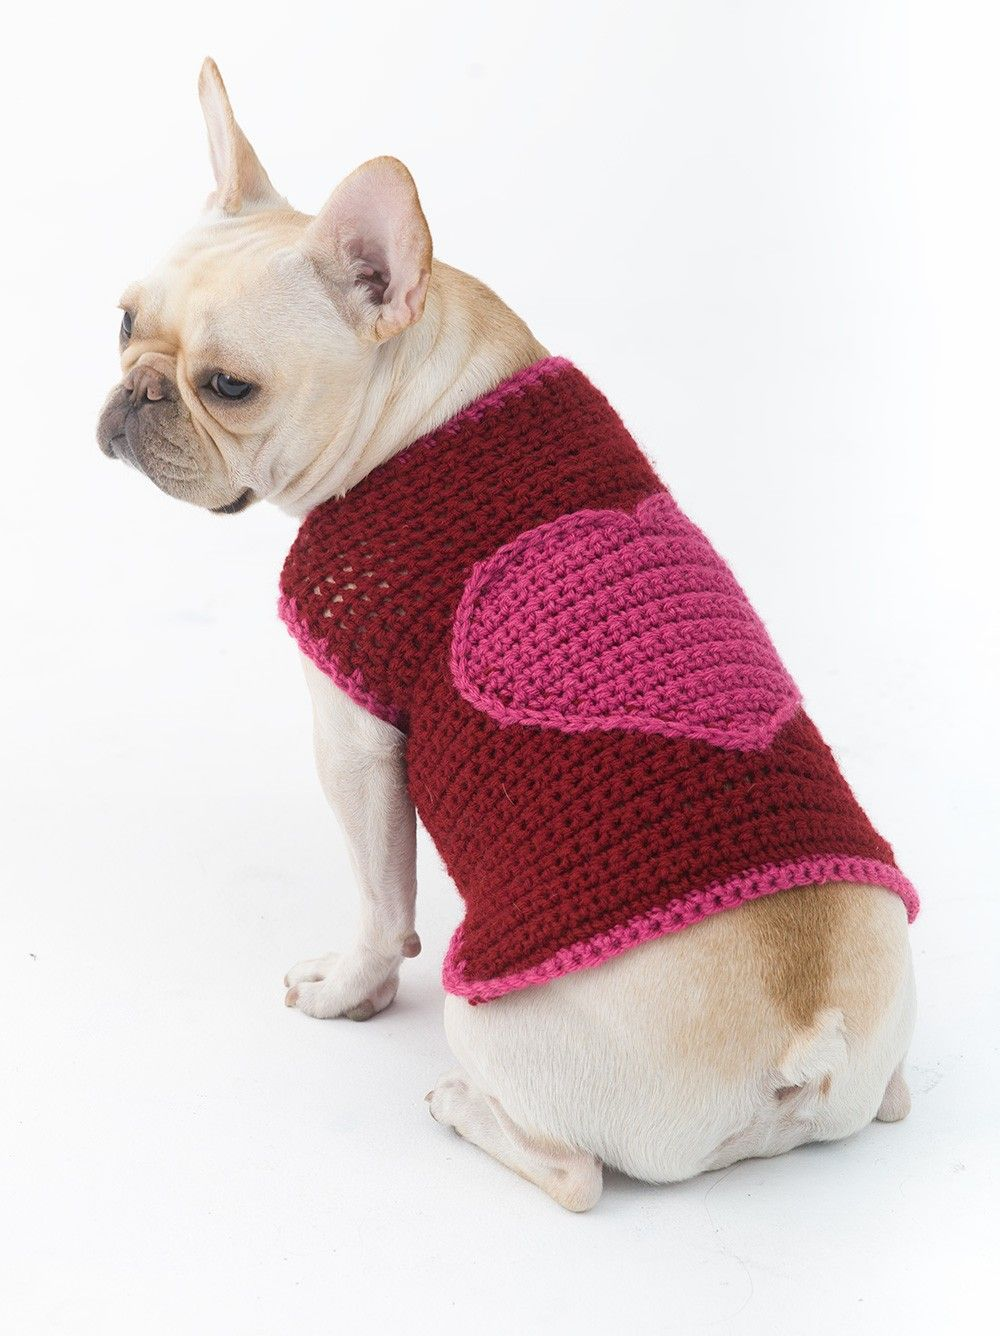 The Romantic Dog Sweater Pattern (Crochet) | CROCHETING | Pinterest